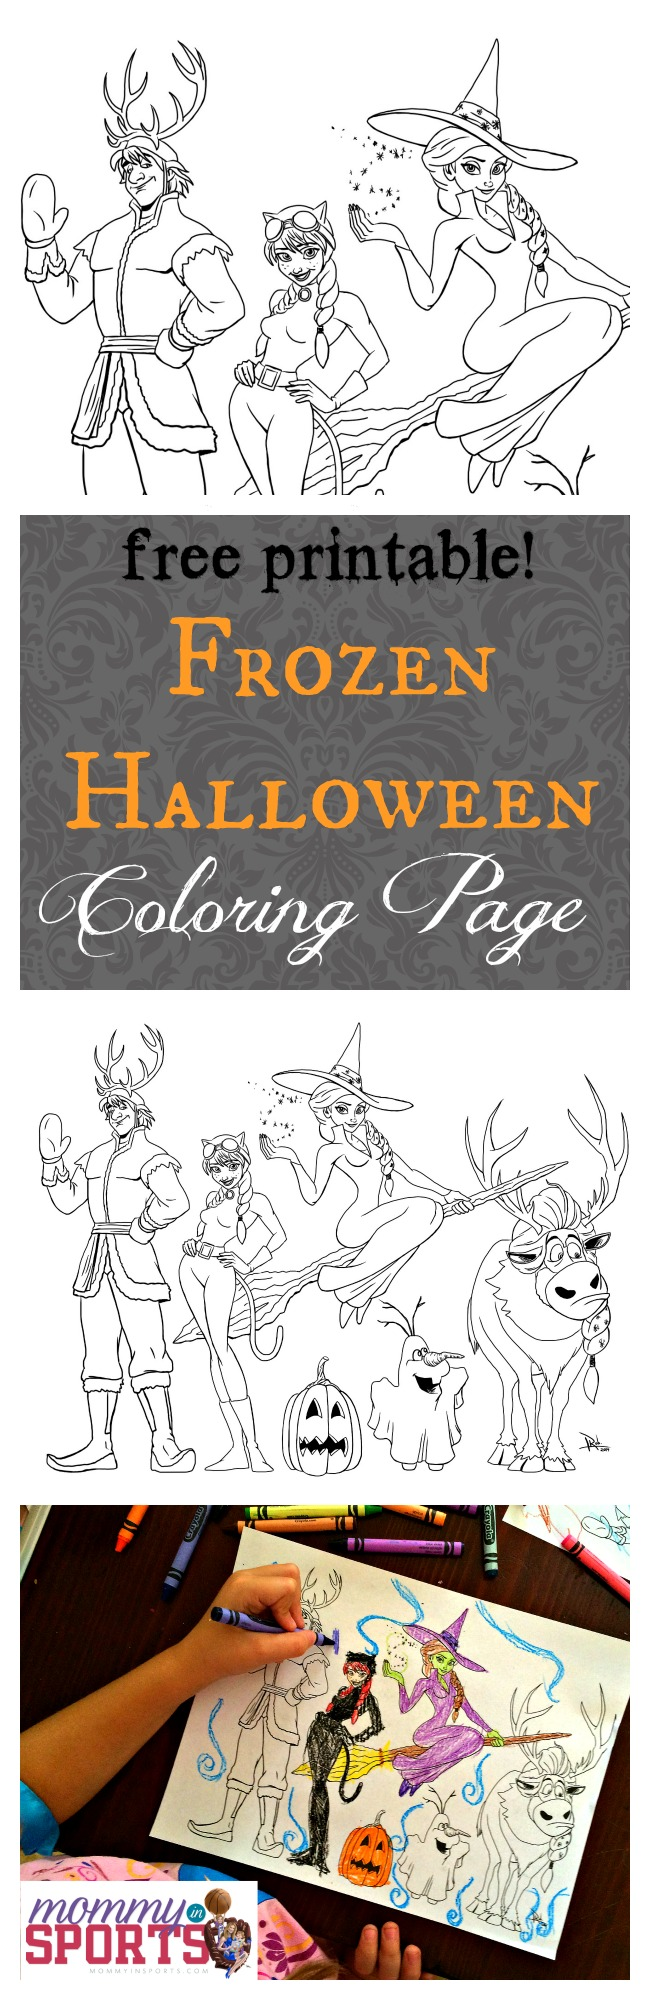 frozen halloween coloring page mommy in sports. Black Bedroom Furniture Sets. Home Design Ideas